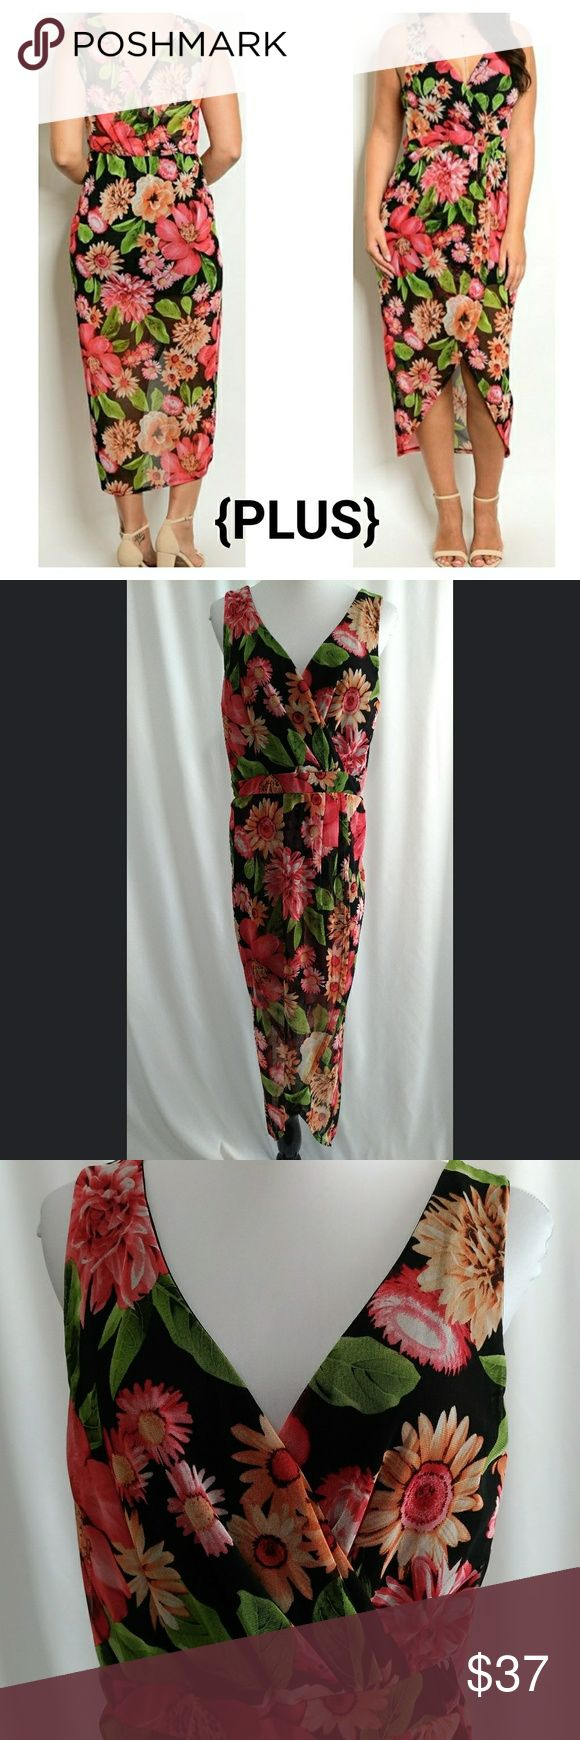 """{JUST IN} Black Mixed Floral Long Dress Black dress with large, red mixed floral print Midi/maxi (depending on your height) Sleeveless Low cut wrap V-neck; similar in back Tulip hem Hi-lo  Short lining Lined top front; semi-sheer back 98% Polyester 2% Spandex  Dry clean Made in USA New without tags  Available in White Floral Print also  Front length: ~44"""" Back length: ~55""""  Pit to pit: XL: 19"""" 2XL: 20"""" 3XL: 21""""  Waist: XL: 36"""" 2XL: 38"""" 3XL: 40""""  Spring Summer Easter Sunday church vacation…"""